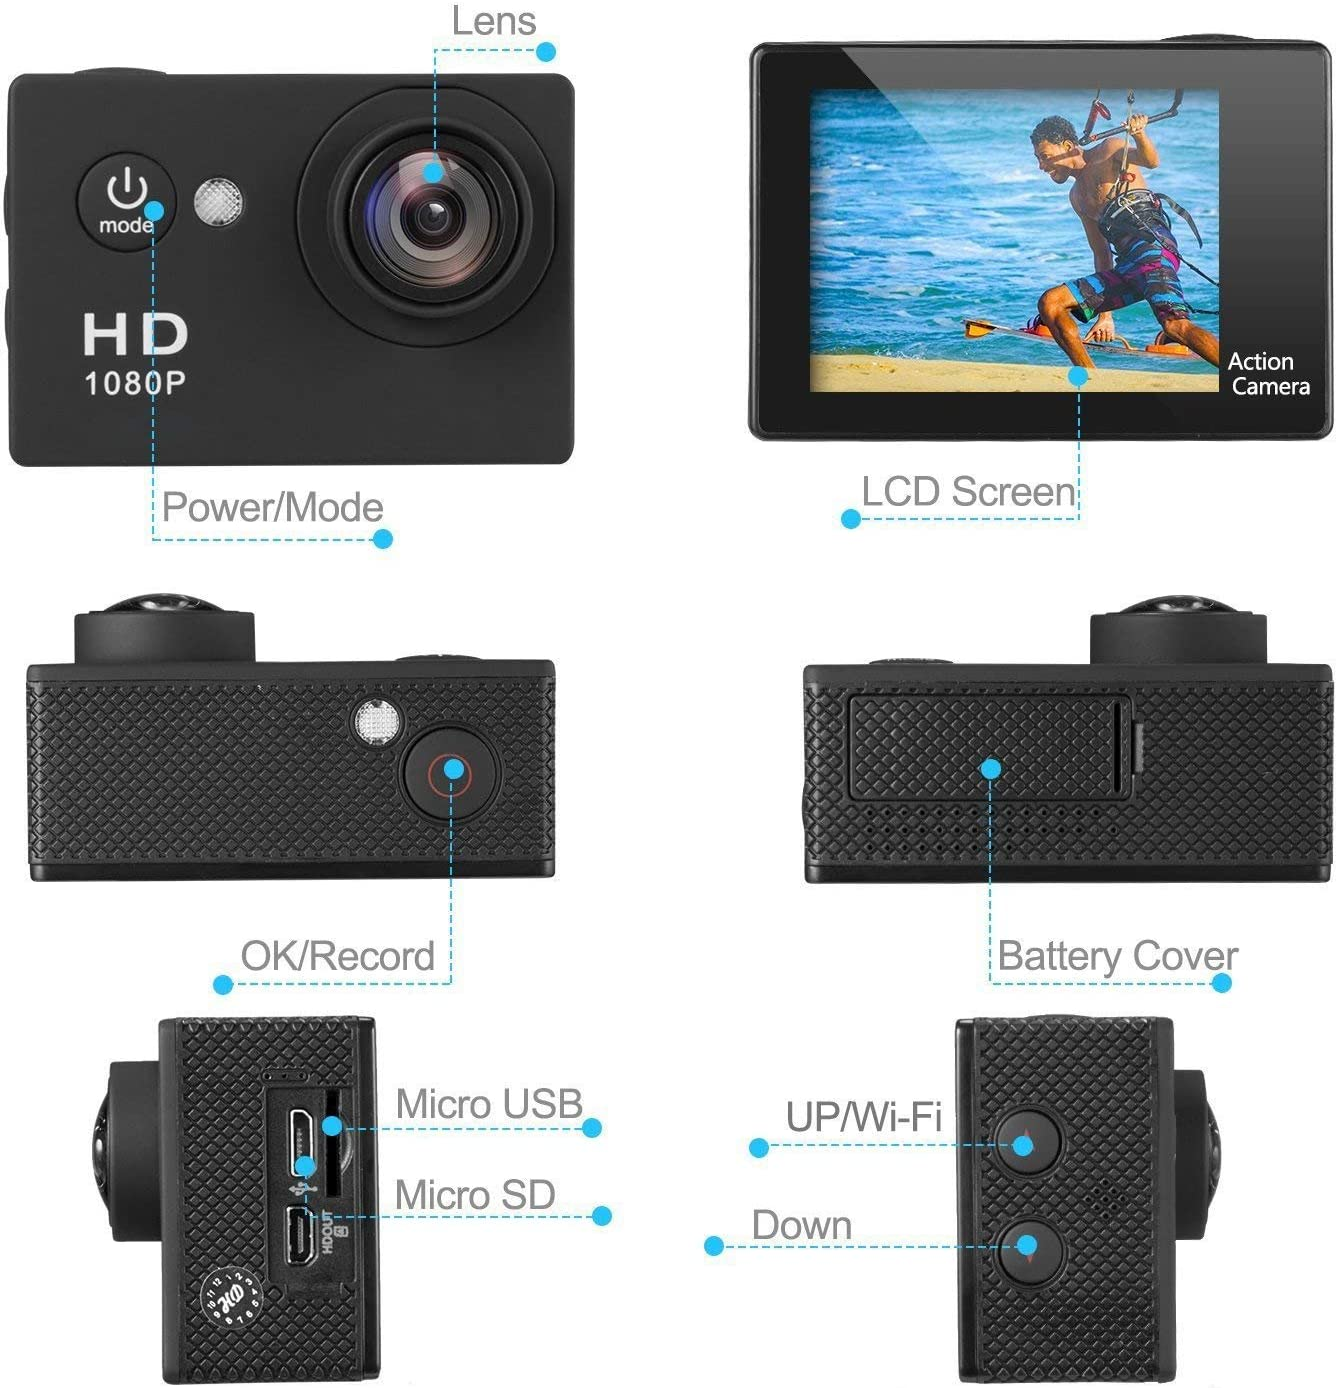 Black03 Koawxc Action Camera 16MP 1080P Underwater Photography Cameras 140 Degree Ultra Wide Angle Lens with 2 Pcs Rechargeable Batteries and Mounting Accessories Kits